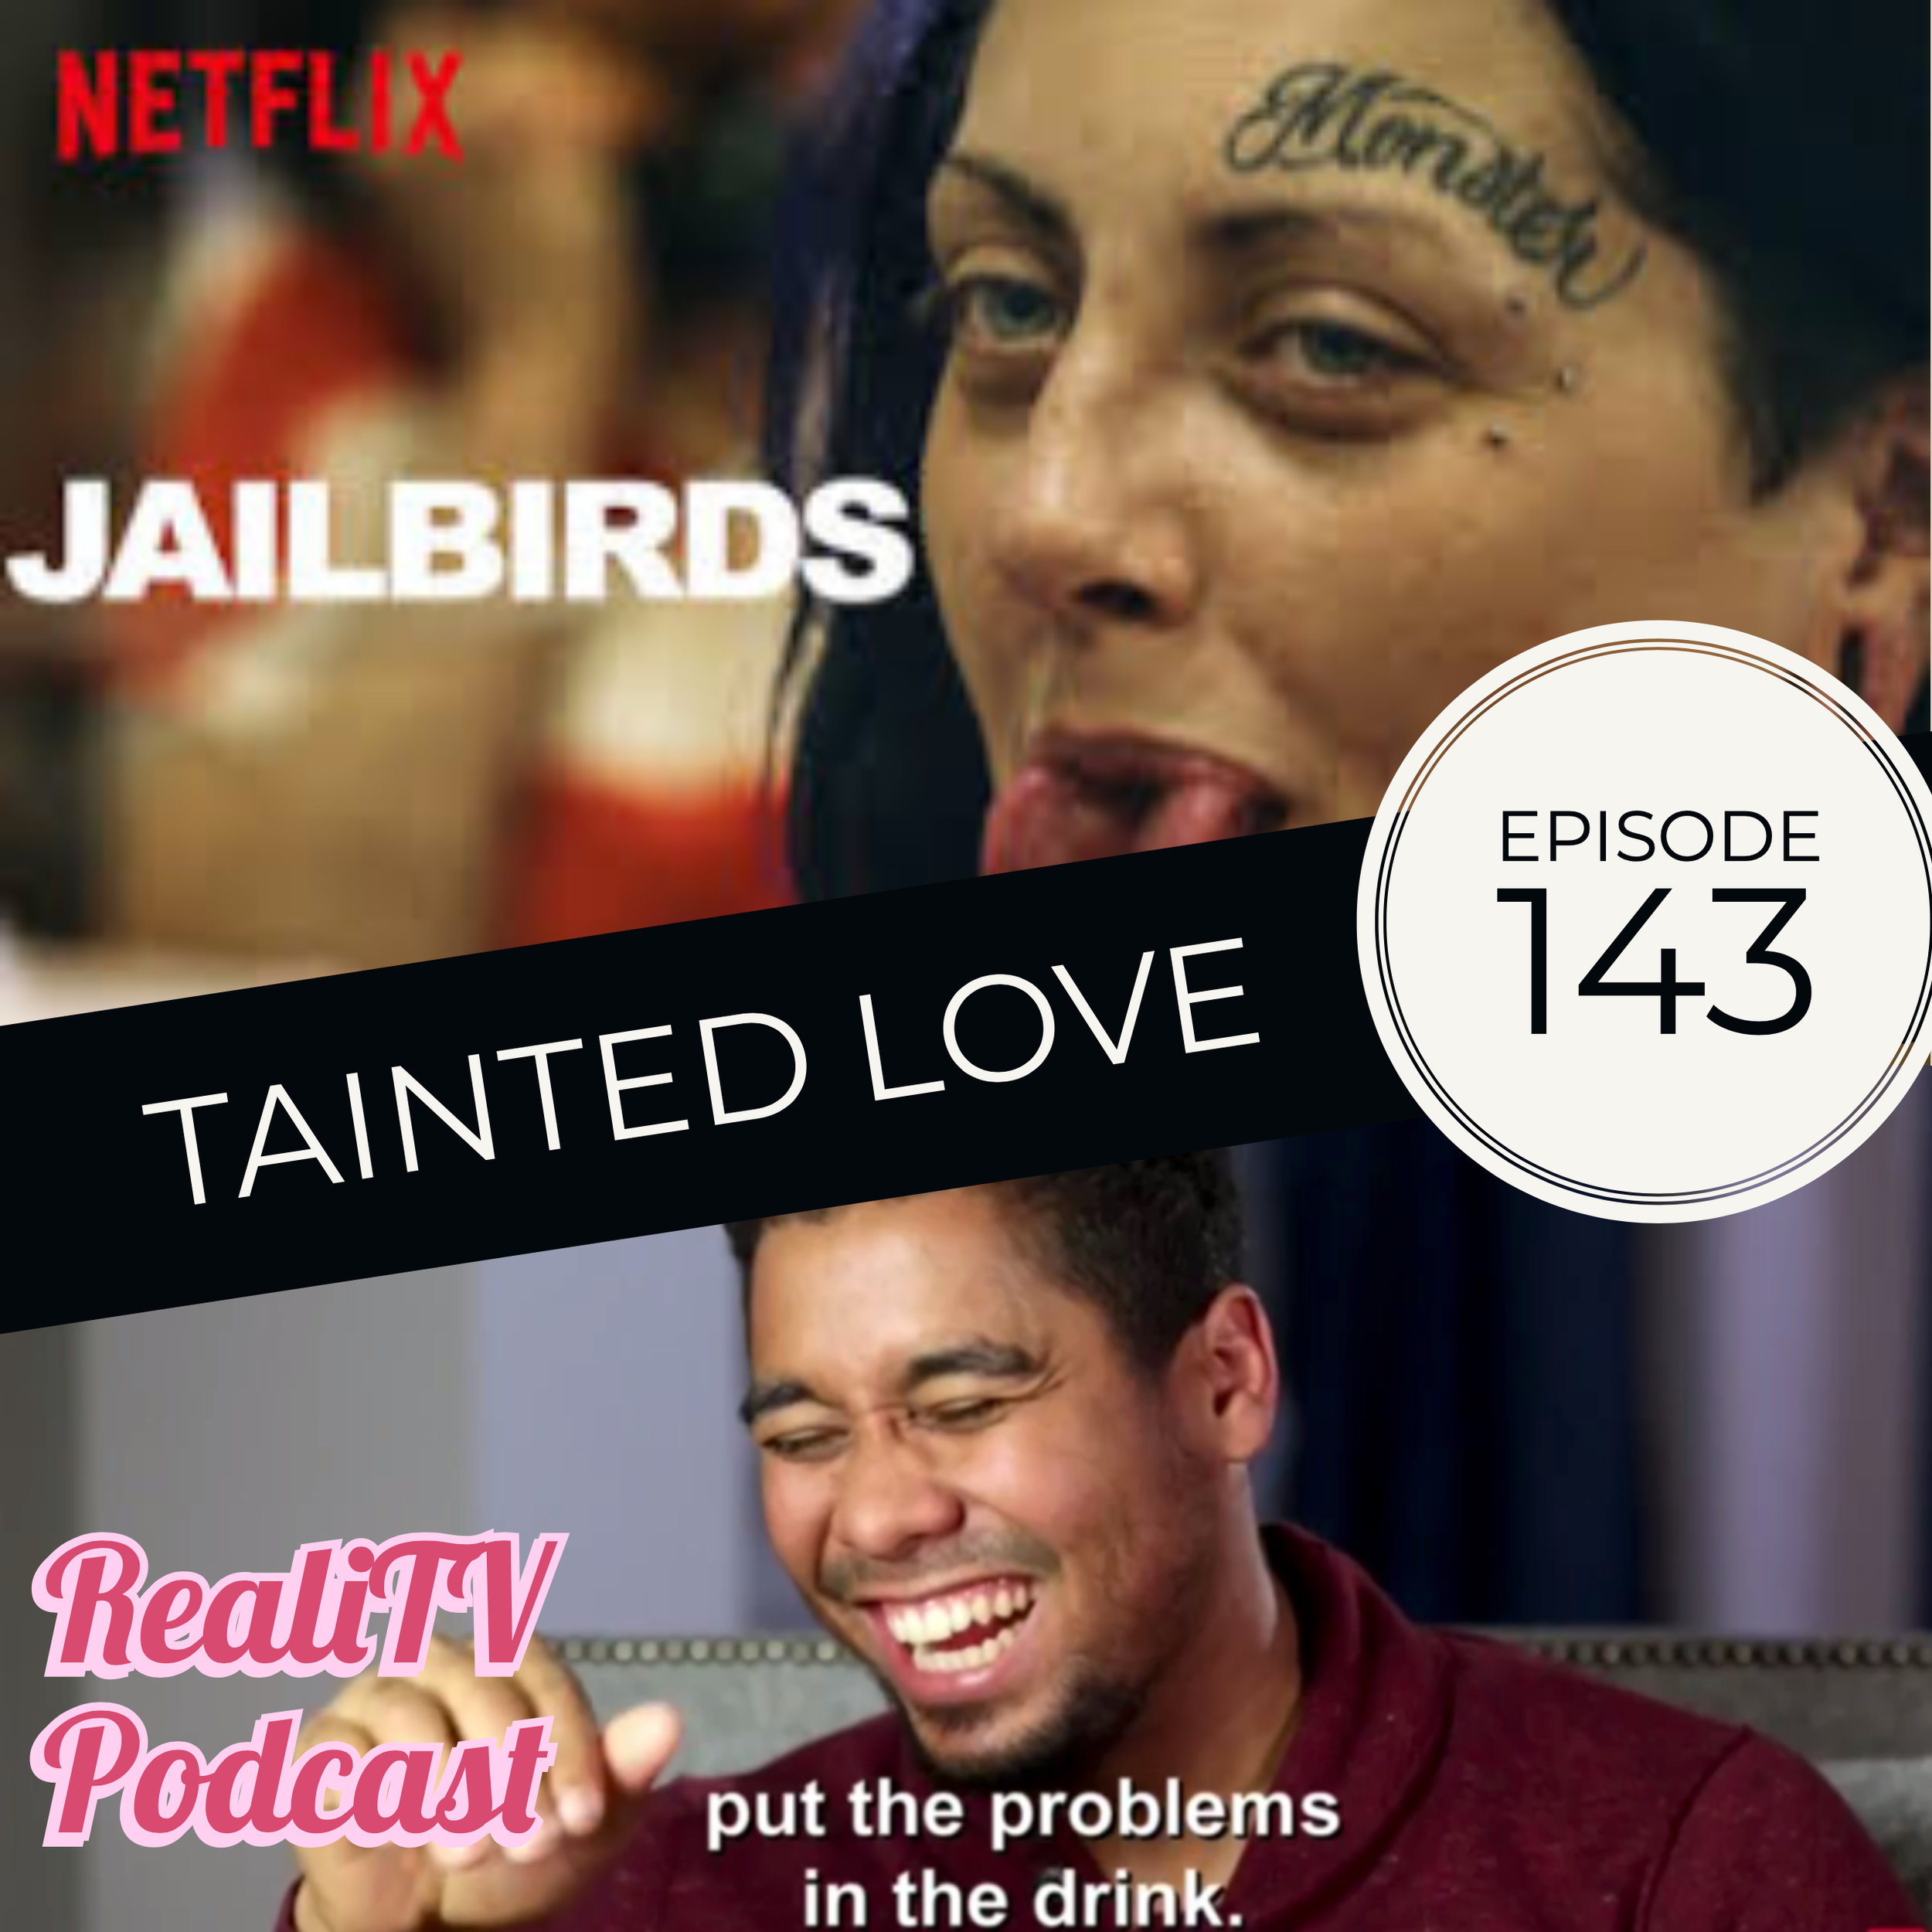 Episode 143: Tainted Love - Netflix's Jailbirds is my everything. I am obsessed and will be looking at my toilet in a whole new way until we get a second season. WE DESERVE A SEASON NUMBER 2! Pun totally intended because, you know, the entire series revolves around potties.Moving on to 90 Day Fiance, we were gifted a week off from Elisabeth & Andrei… I knew Oprah would listen to our prayers. Paola continues her crusade against Oklahoma and our common sense, Pedro smiles for the first time ever, and Nicole gives us a tour of Robbalee's K-Cup Collection.